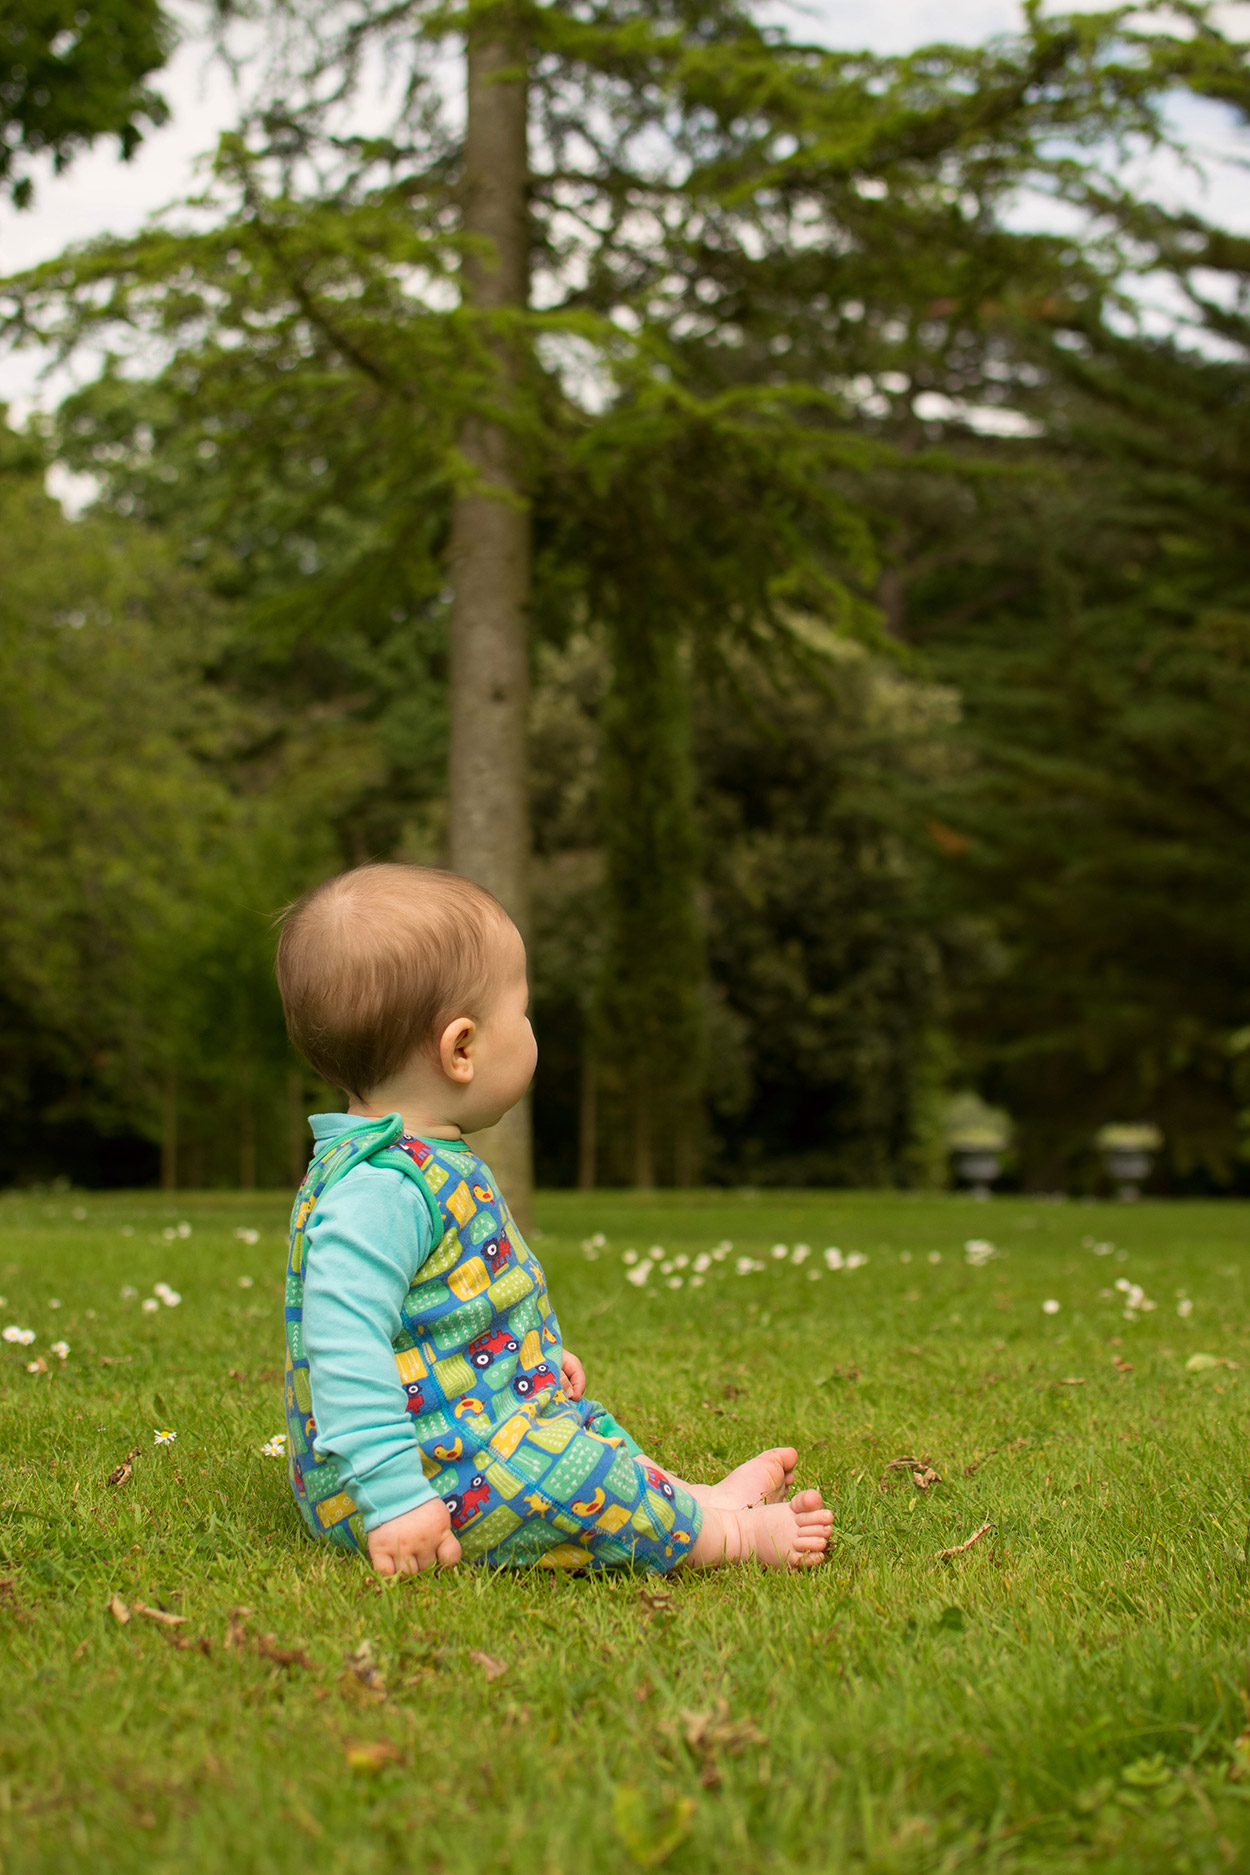 'Time to make a big decision' {The Ordinary Moments 21} - Baby boy wearing Frugi tractor dungarees sitting on the grass looking into the distance at Buscot Park, Oxford